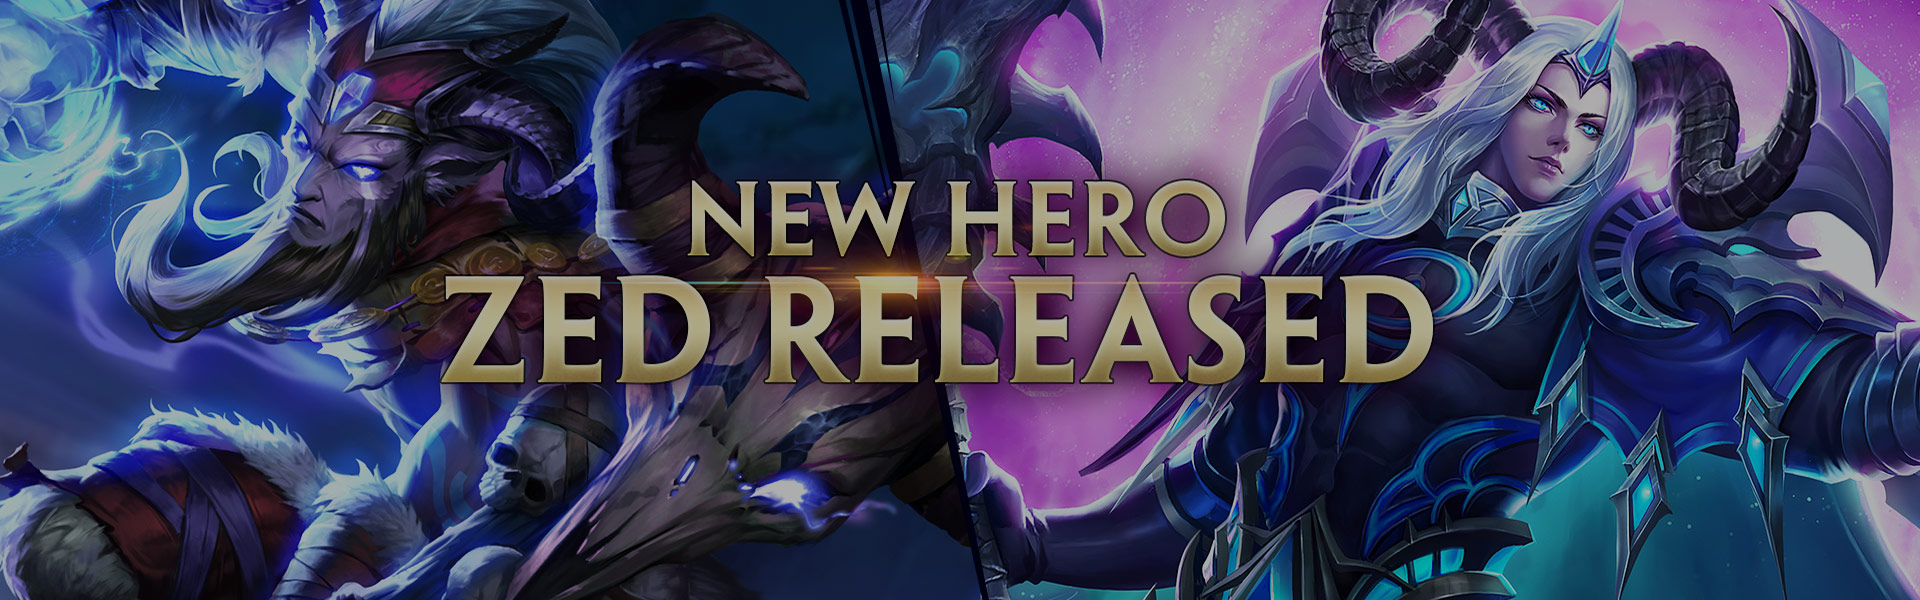 Heroes Evolved Update - June 13th 2018